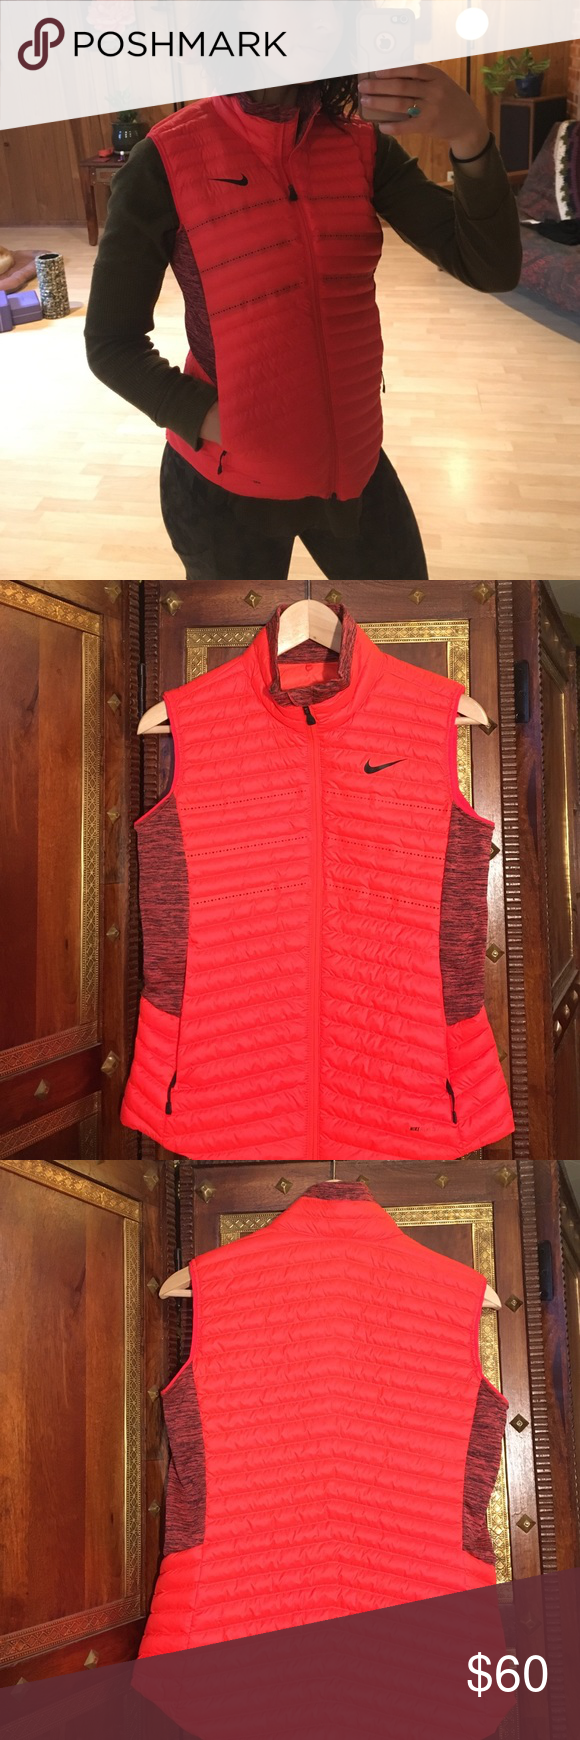 Coral Nike Aeroloft vest New without tags. Nice slim fit, warm fleecey zippered pockets. Fits nicely over a light sweater or under a coat.  Side panels are stretchy. Has a grommet in pocket to attach headphones through. Lightweight, Warm and stylish! Nike Jackets & Coats Vests